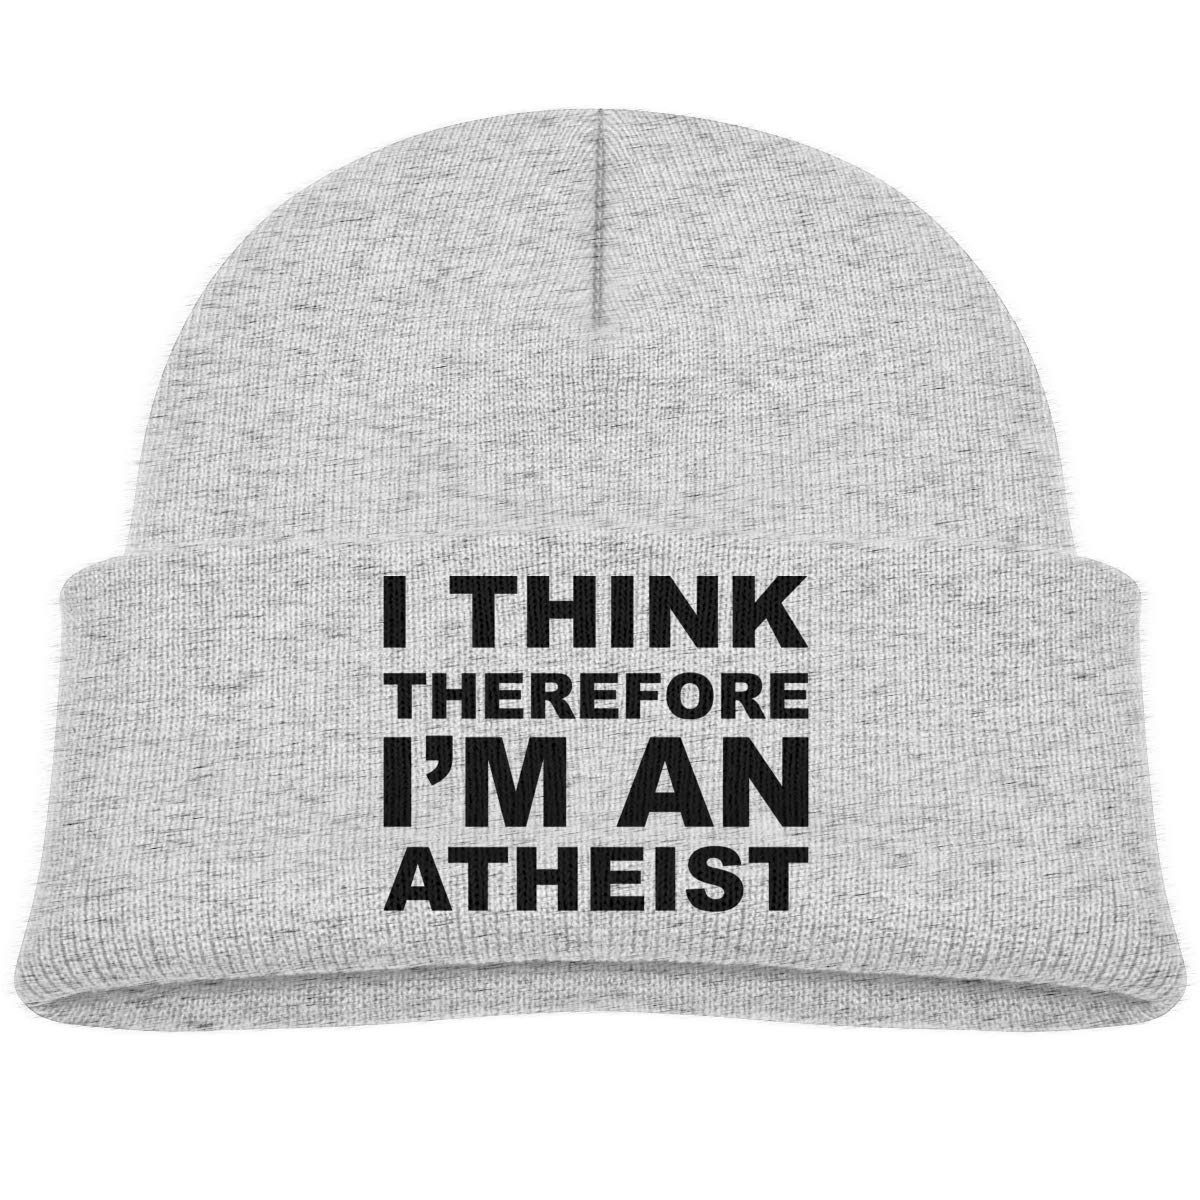 Hanfjj Kefdk I Think Therefore Im Atheist Infant Skull Hat Kids Beanies Caps